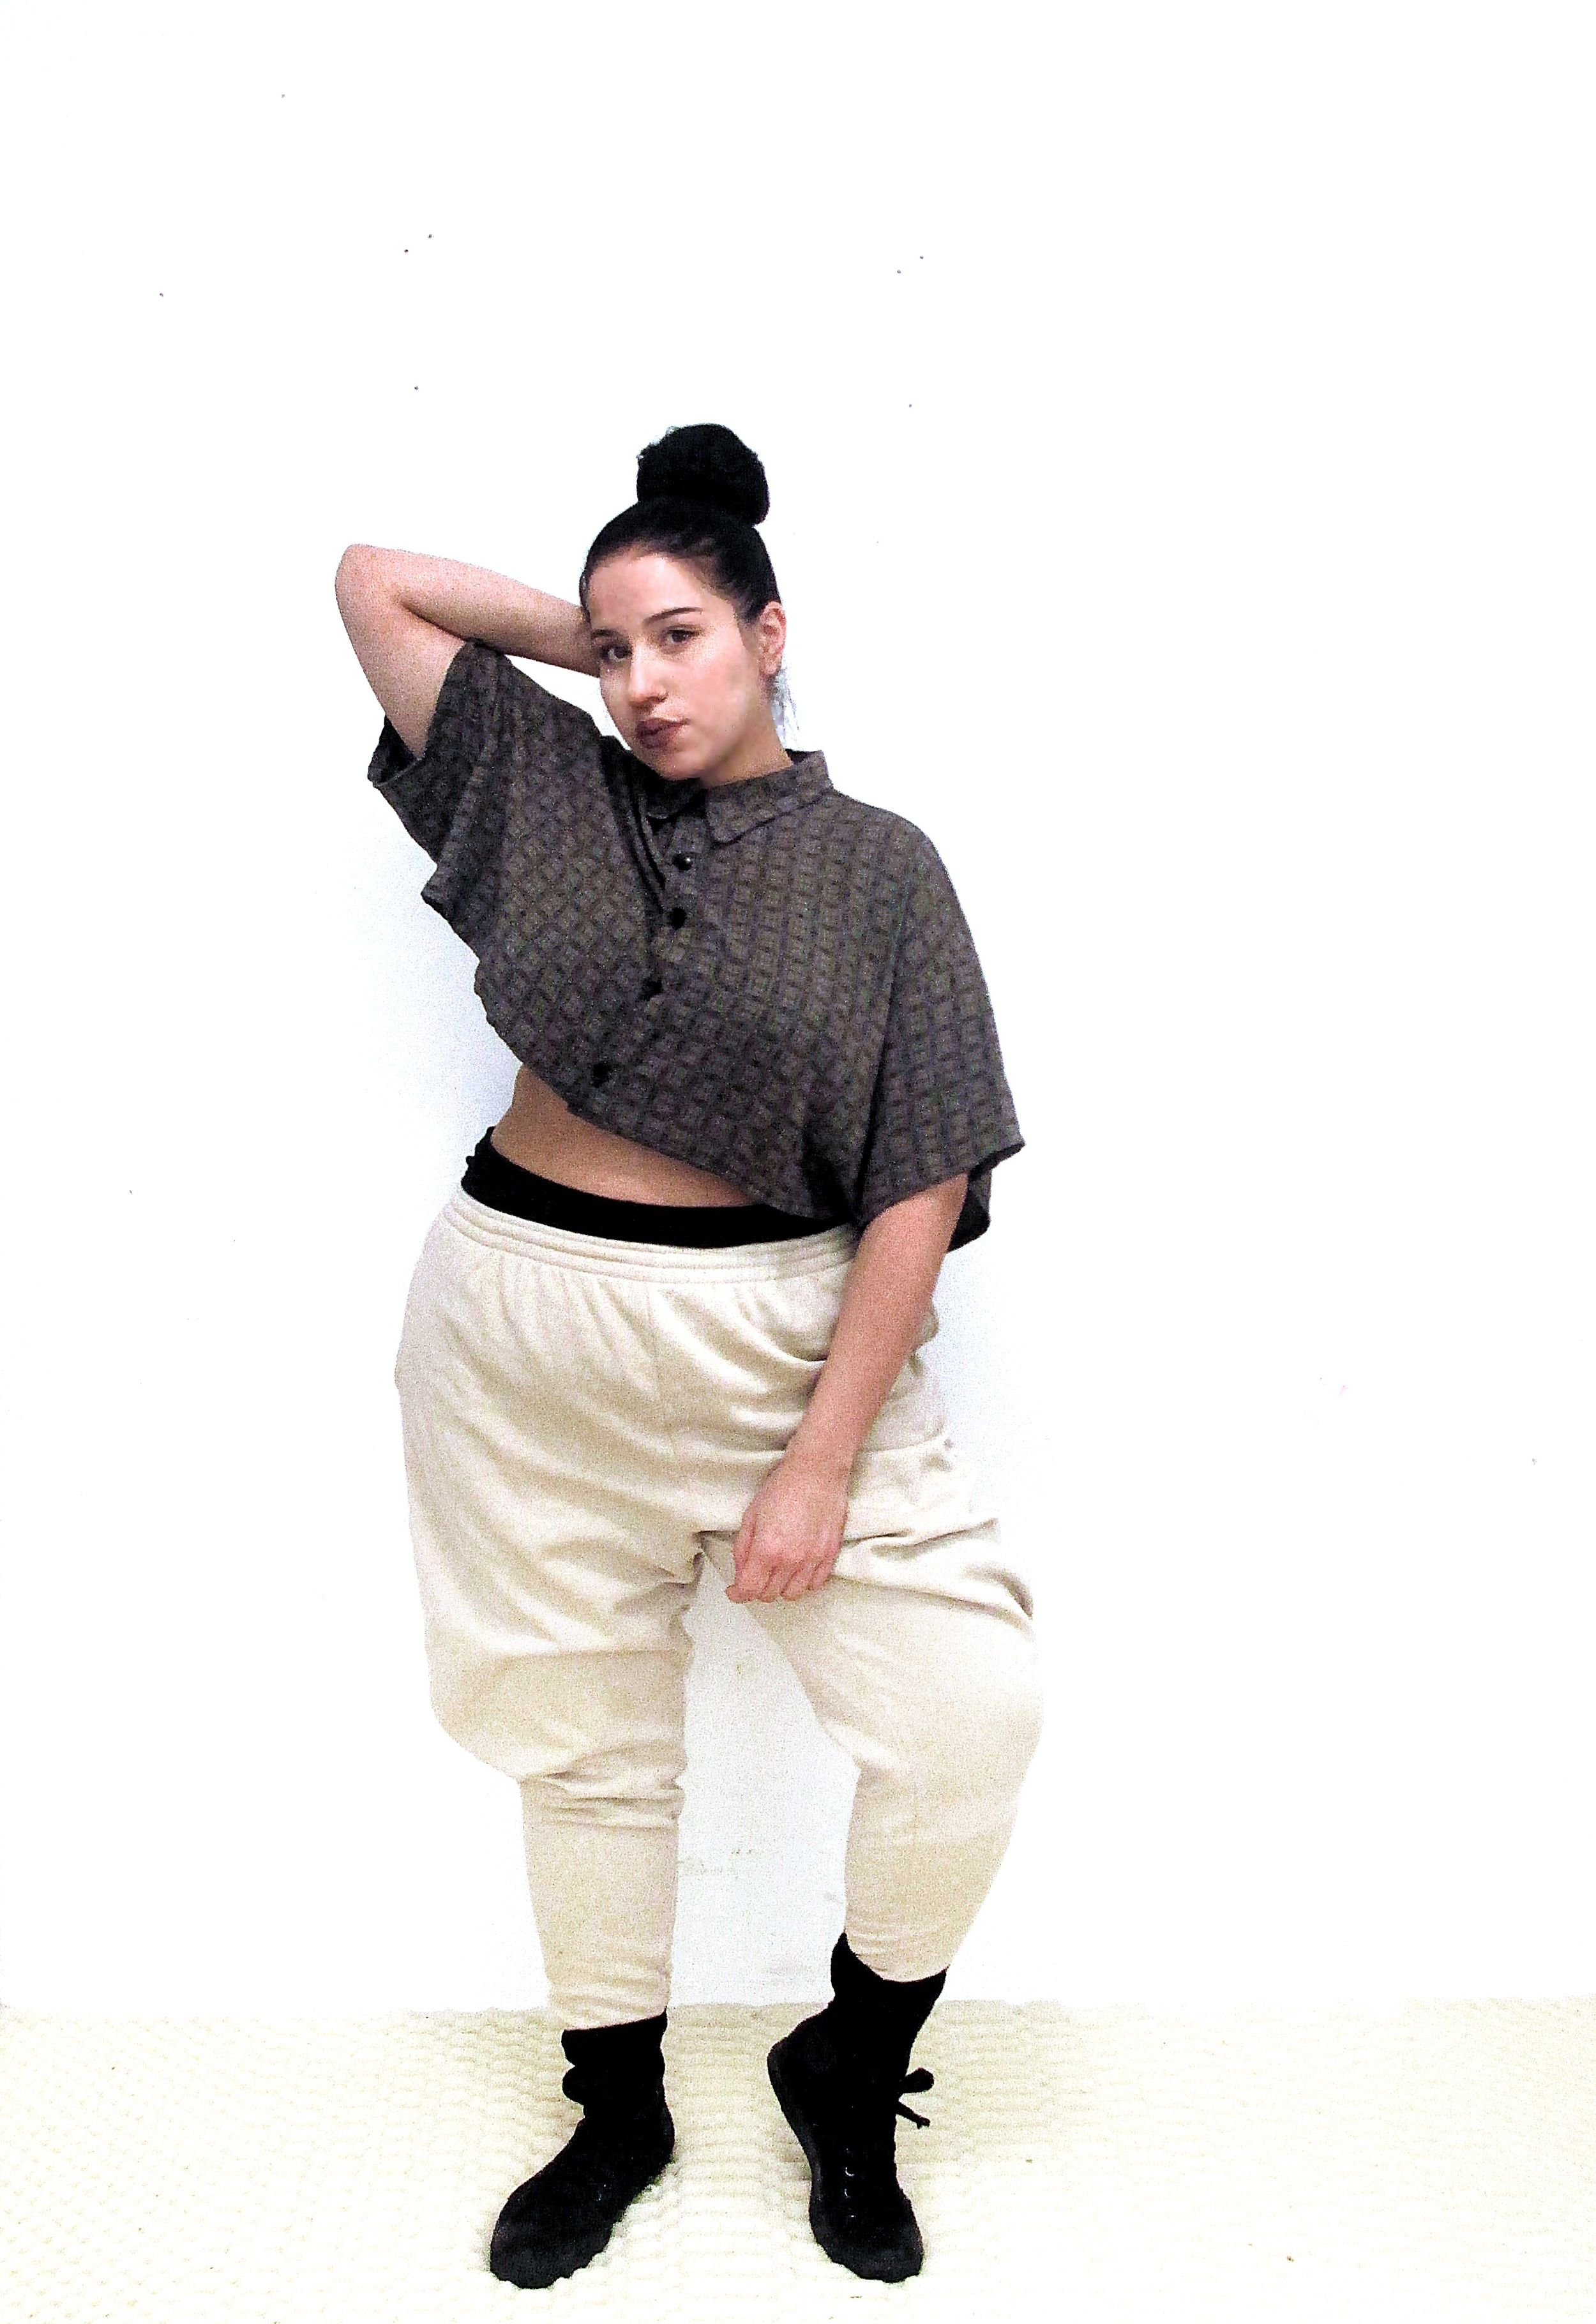 adb8d8ac5d9 Apr 26 9 Plus Size Cuties Share Tips For Androgynous Style ...